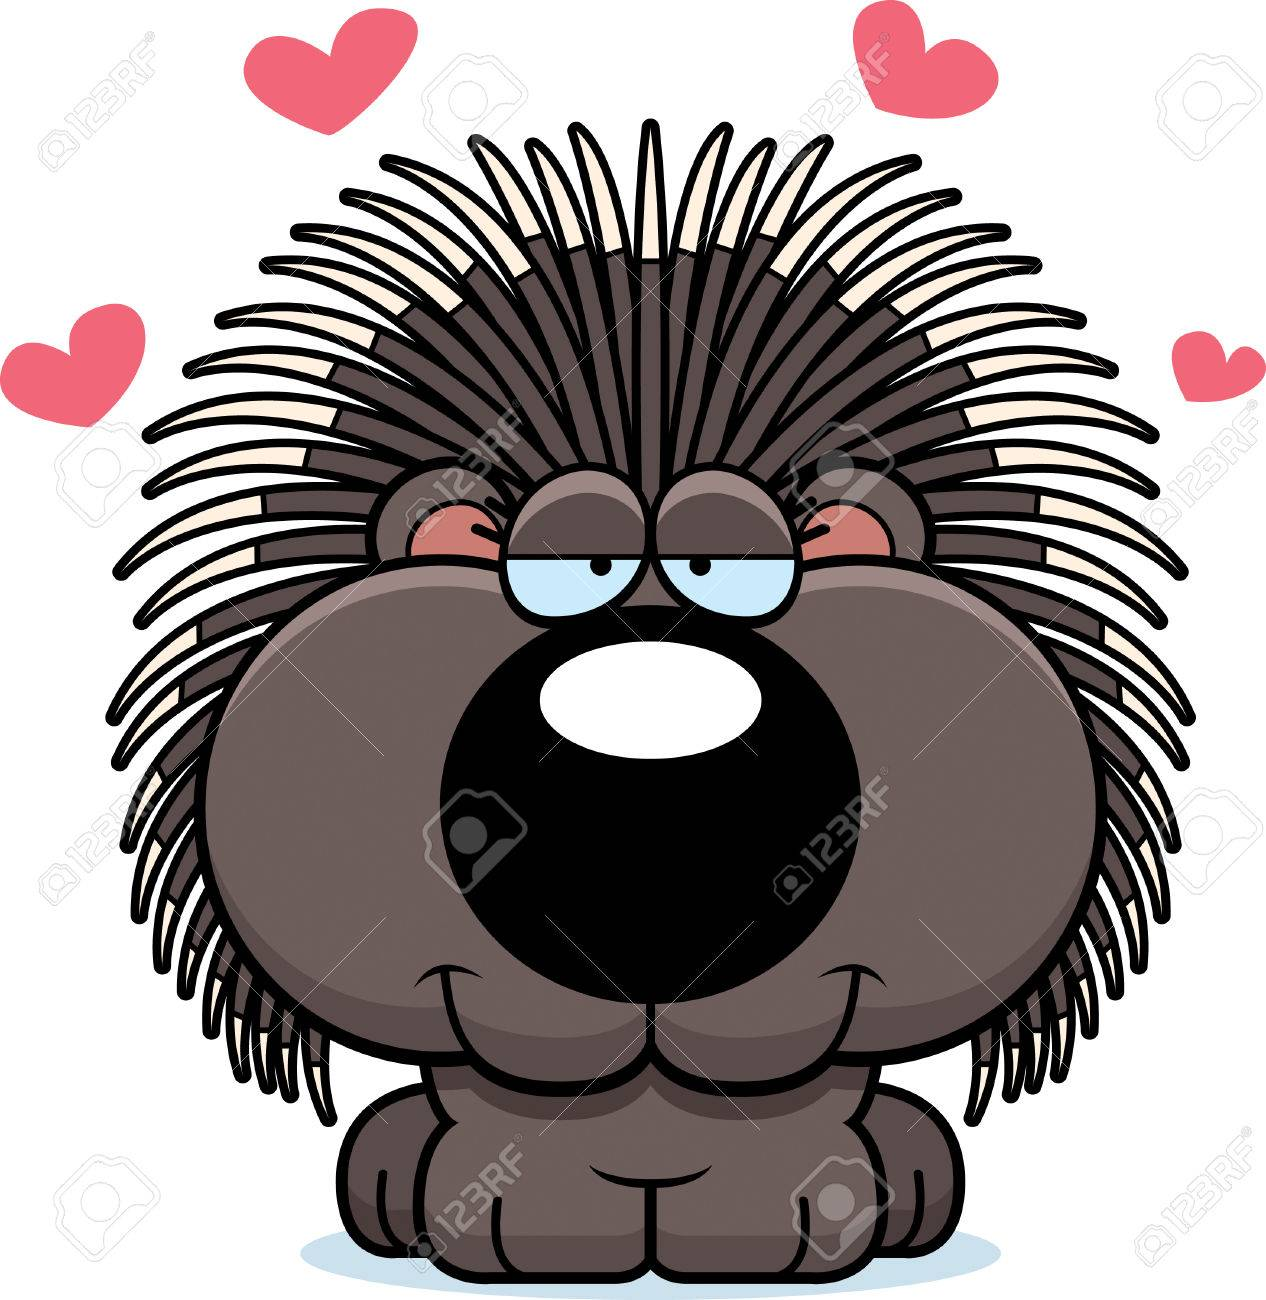 hight resolution of a cartoon illustration of a porcupine with an in love expression stock vector 44763098